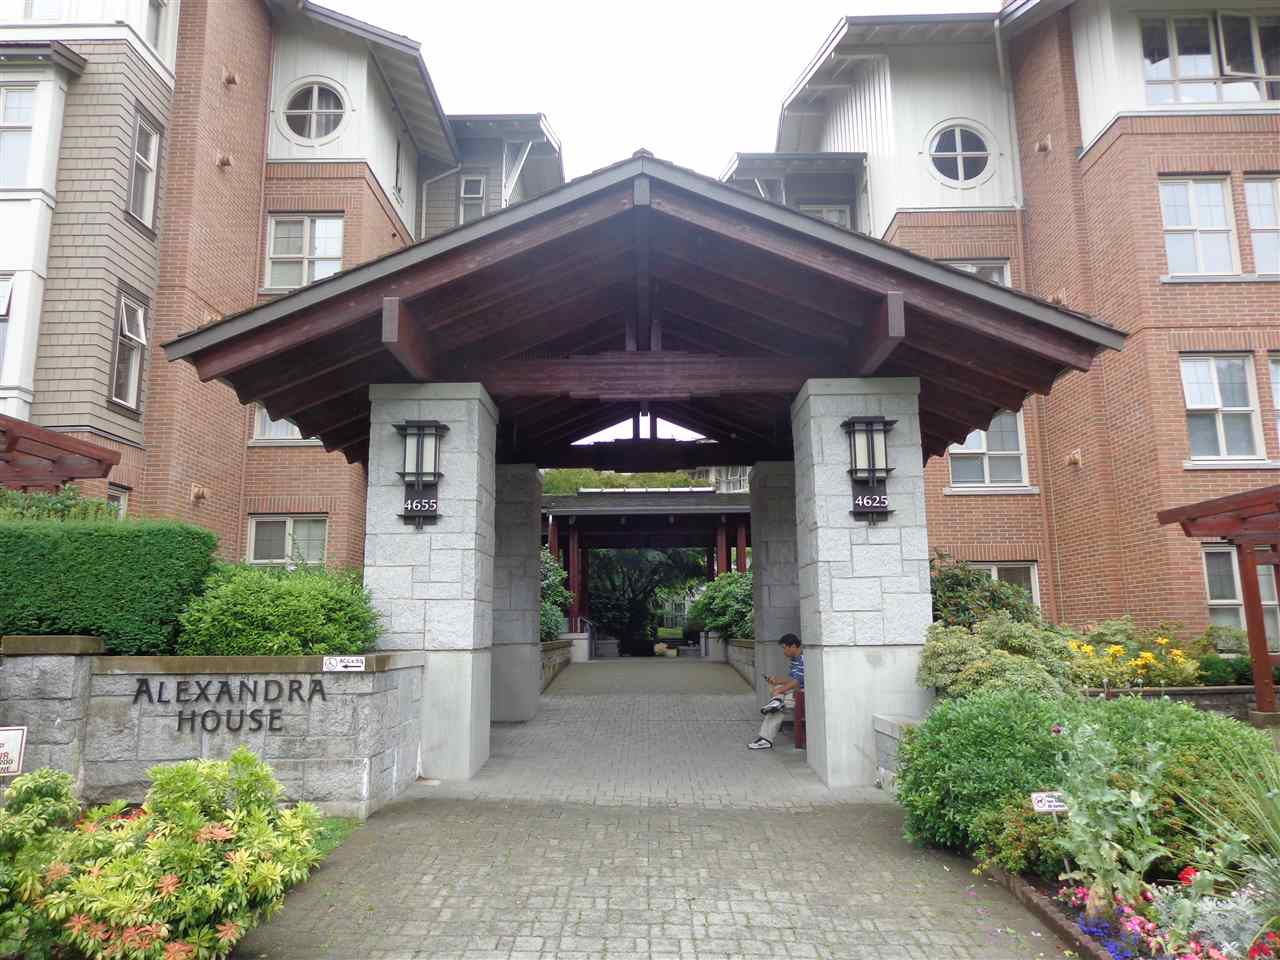 "Main Photo: 2105 4625 VALLEY Drive in Vancouver: Quilchena Condo for sale in ""ALEXANDRA HOUSE"" (Vancouver West)  : MLS® # R2090926"